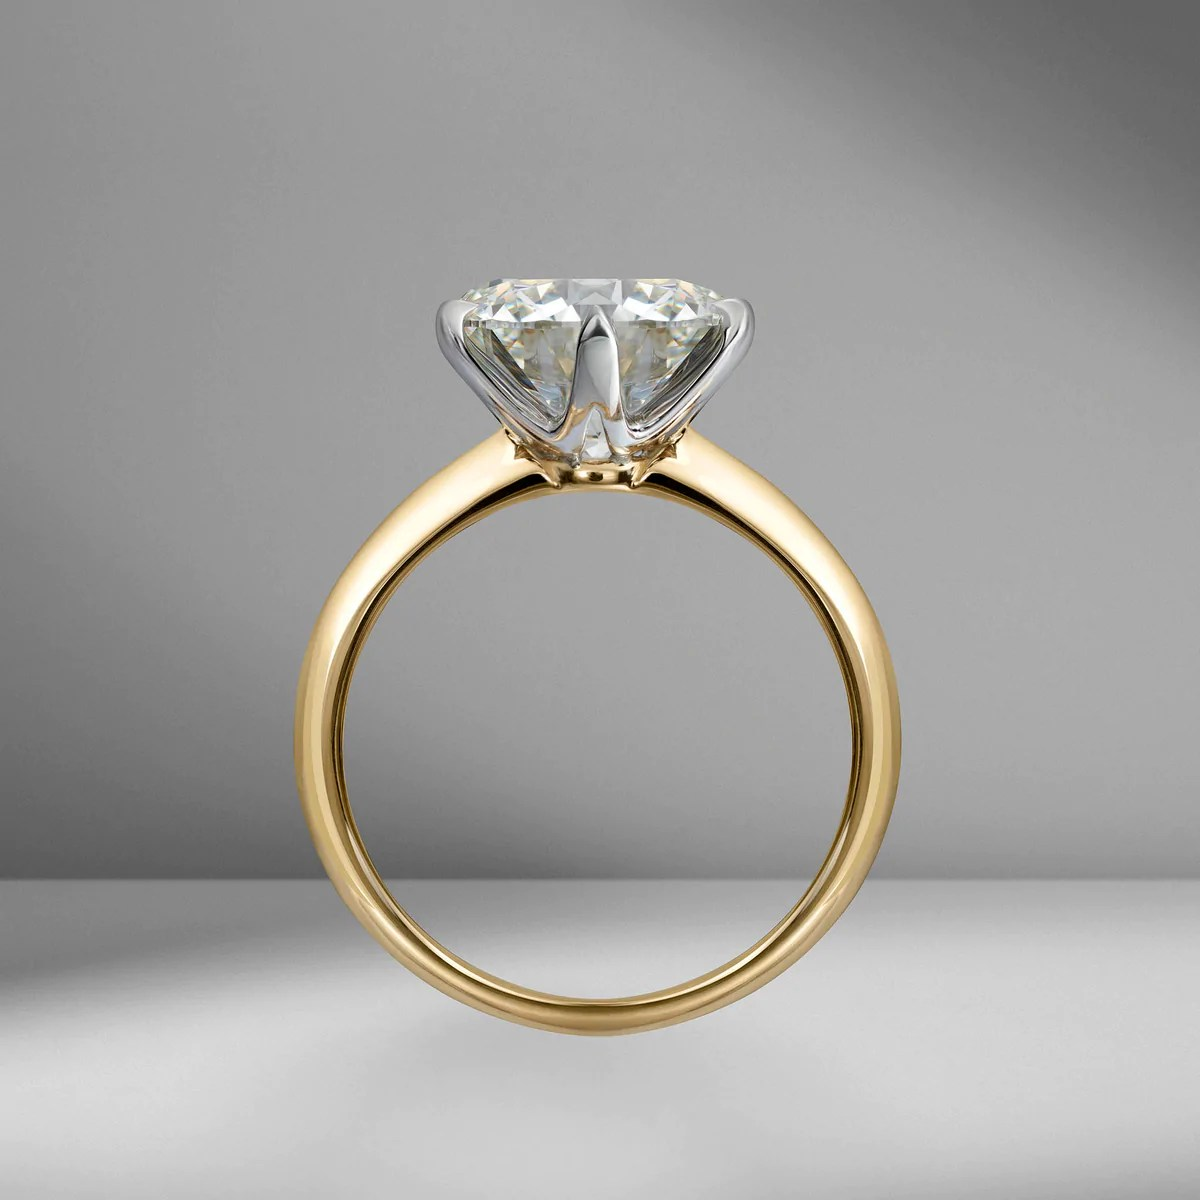 Brilliant Cut Solitaire Engagement Ring With Classic